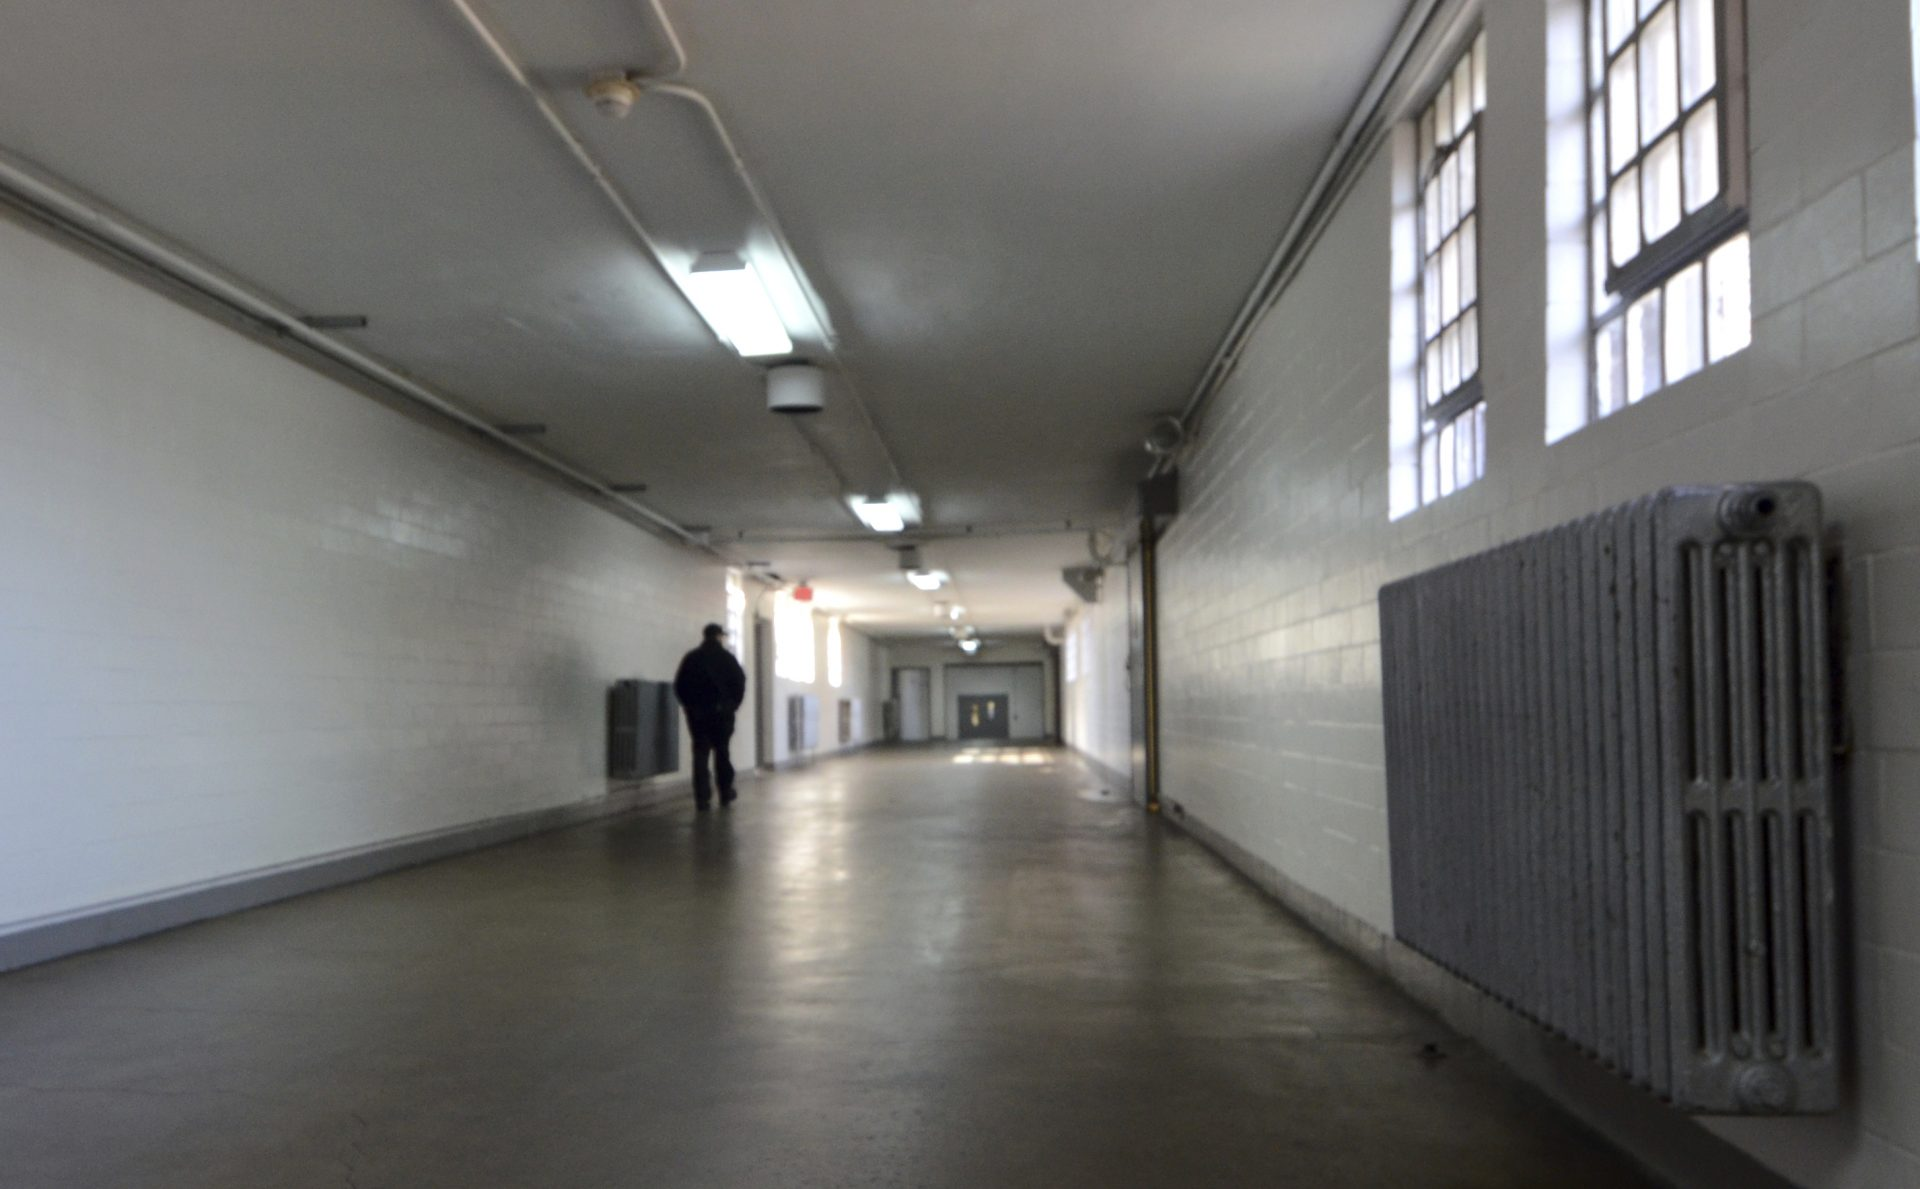 A corrections officer walks down a hallway in a building at the State Correctional Institution at Camp Hill, Pennsylvania, on Jan. 13, 2017, in Camp Hill, Pa.